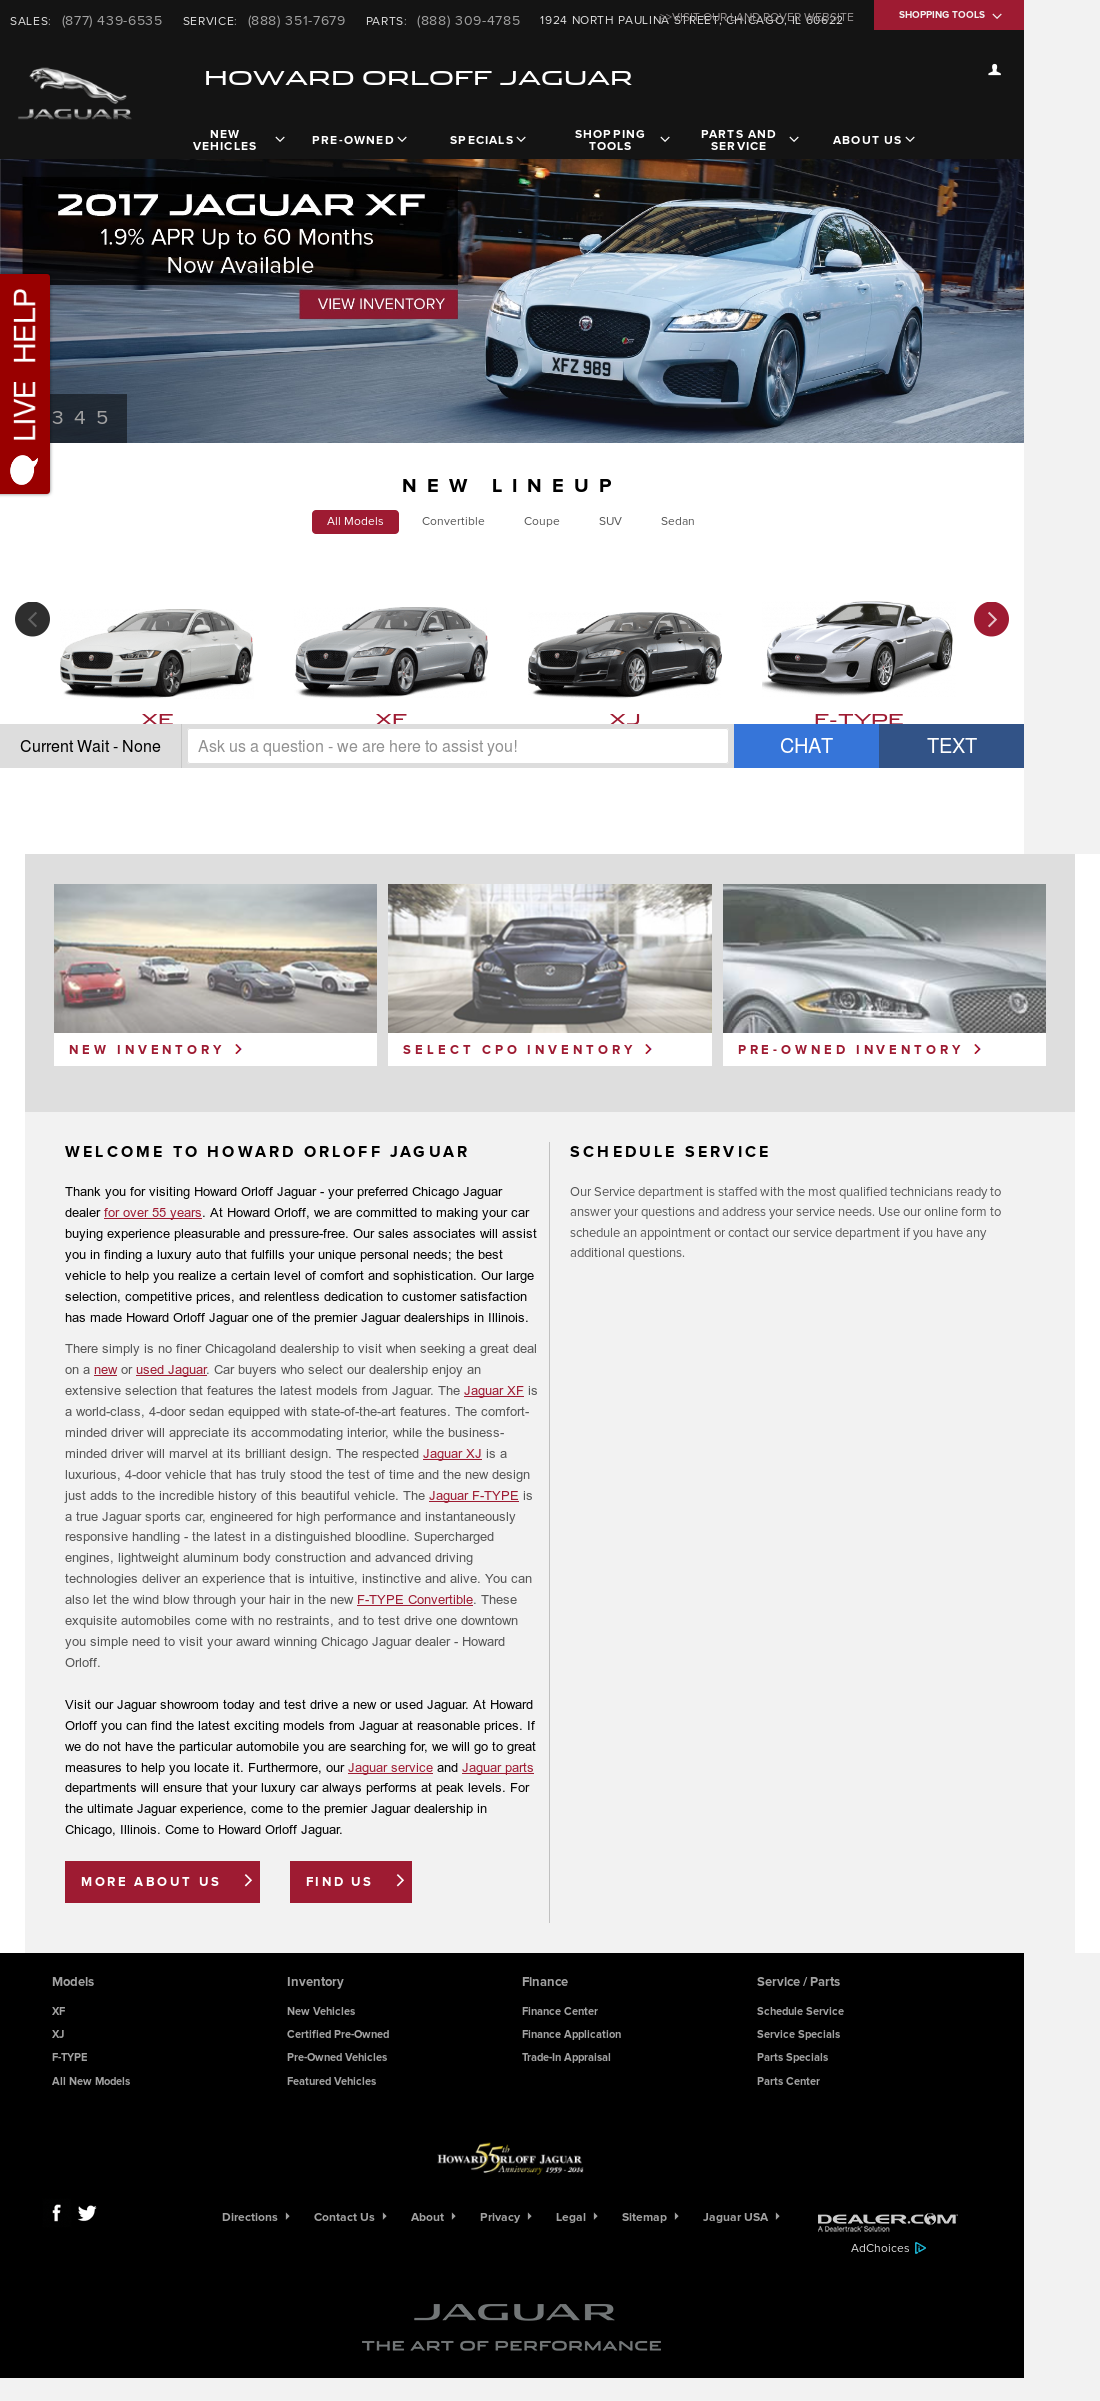 Howard Orloff Jaguar Volvo Website History